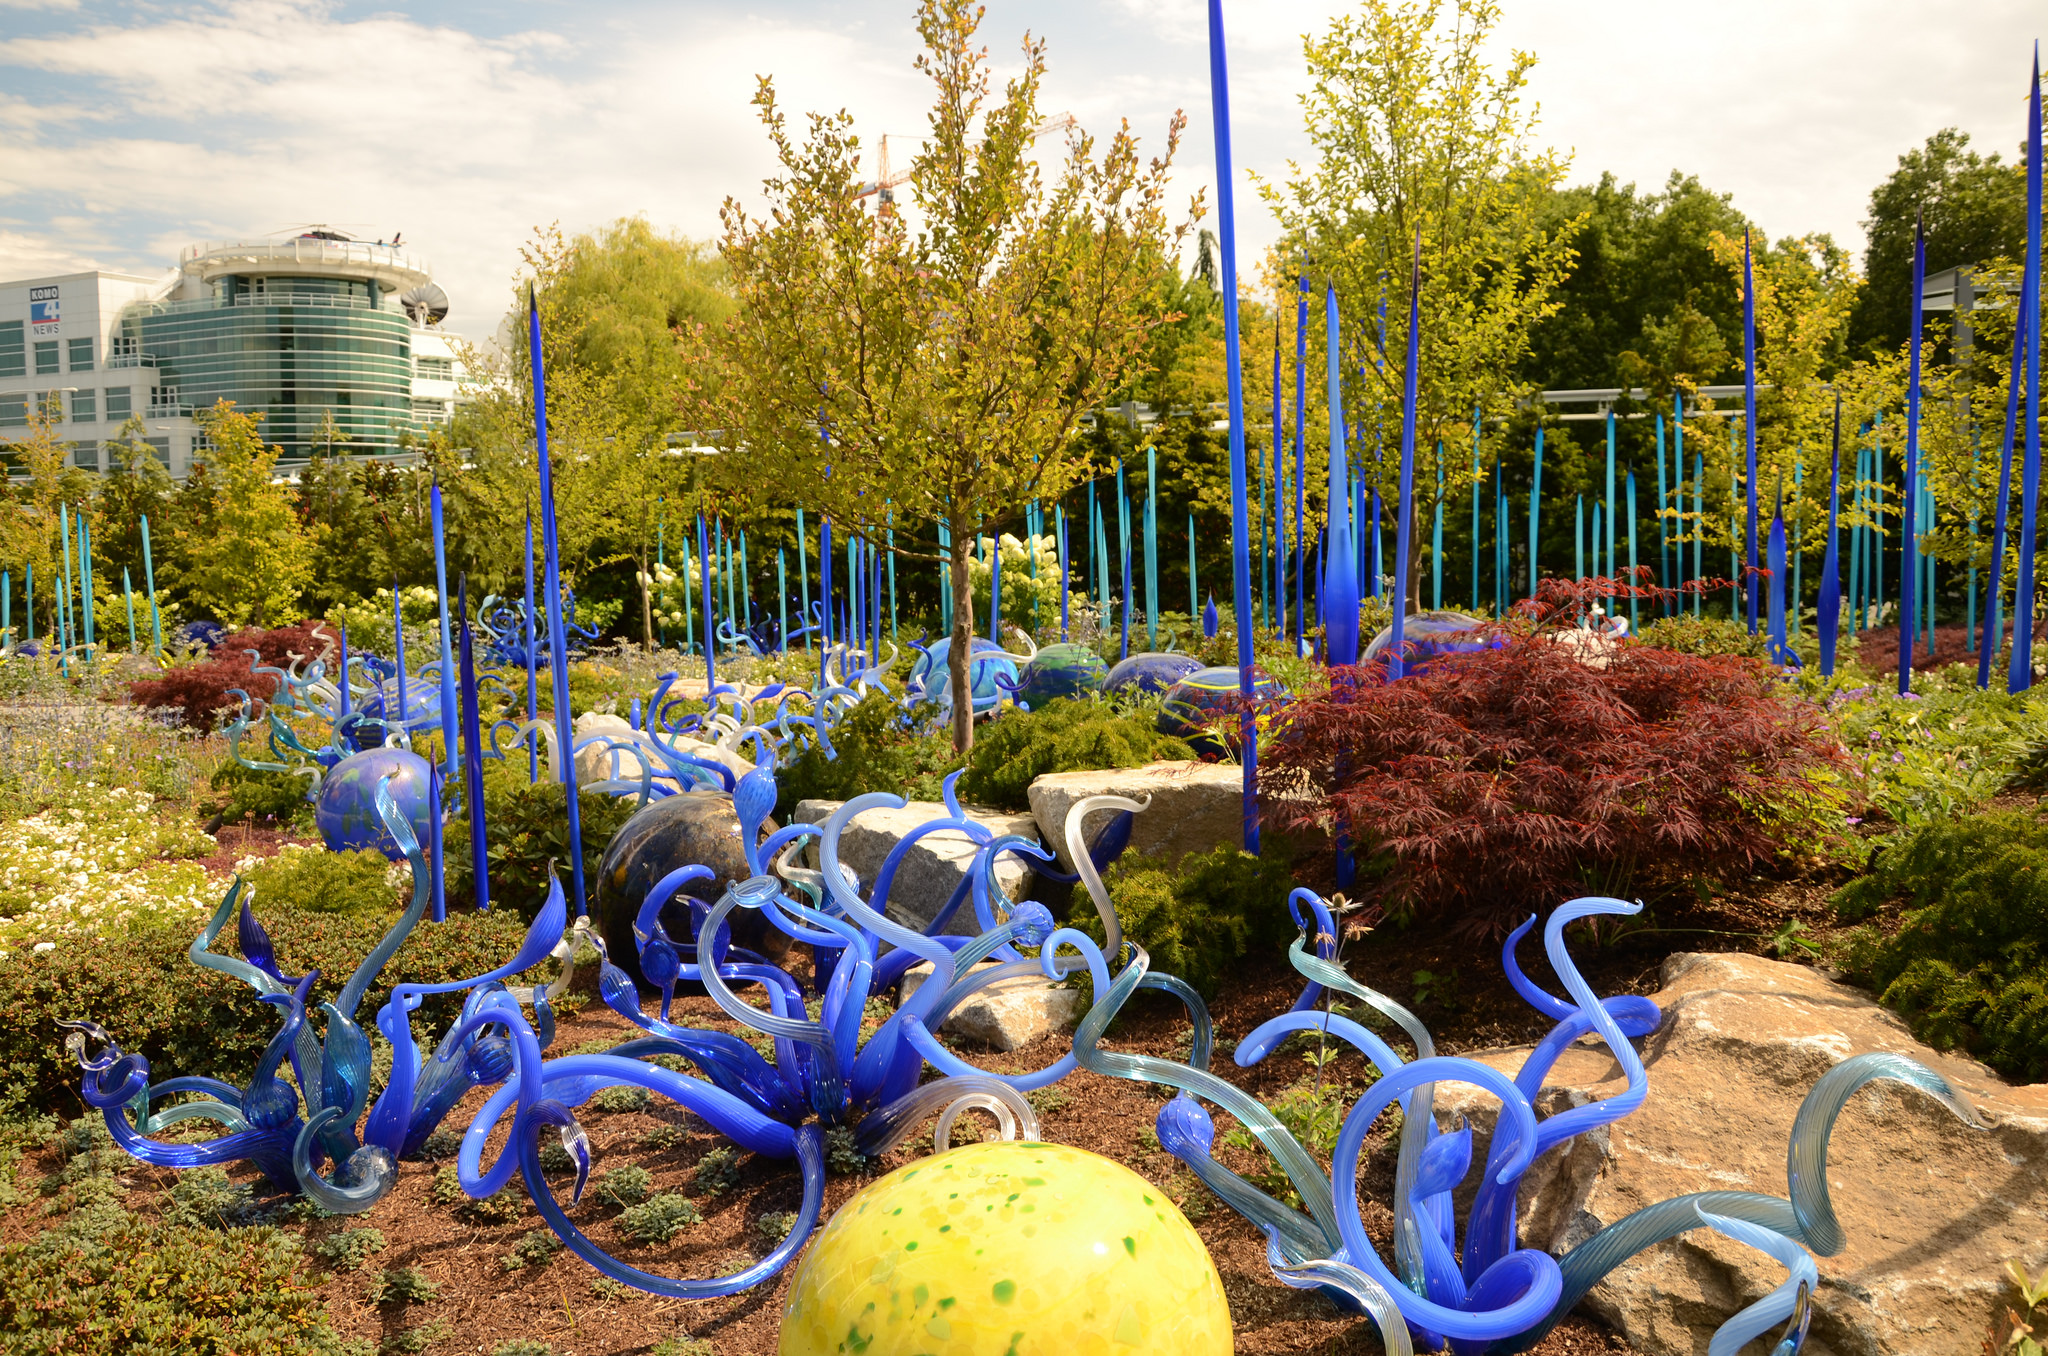 chihuly garden and glass - photo #15